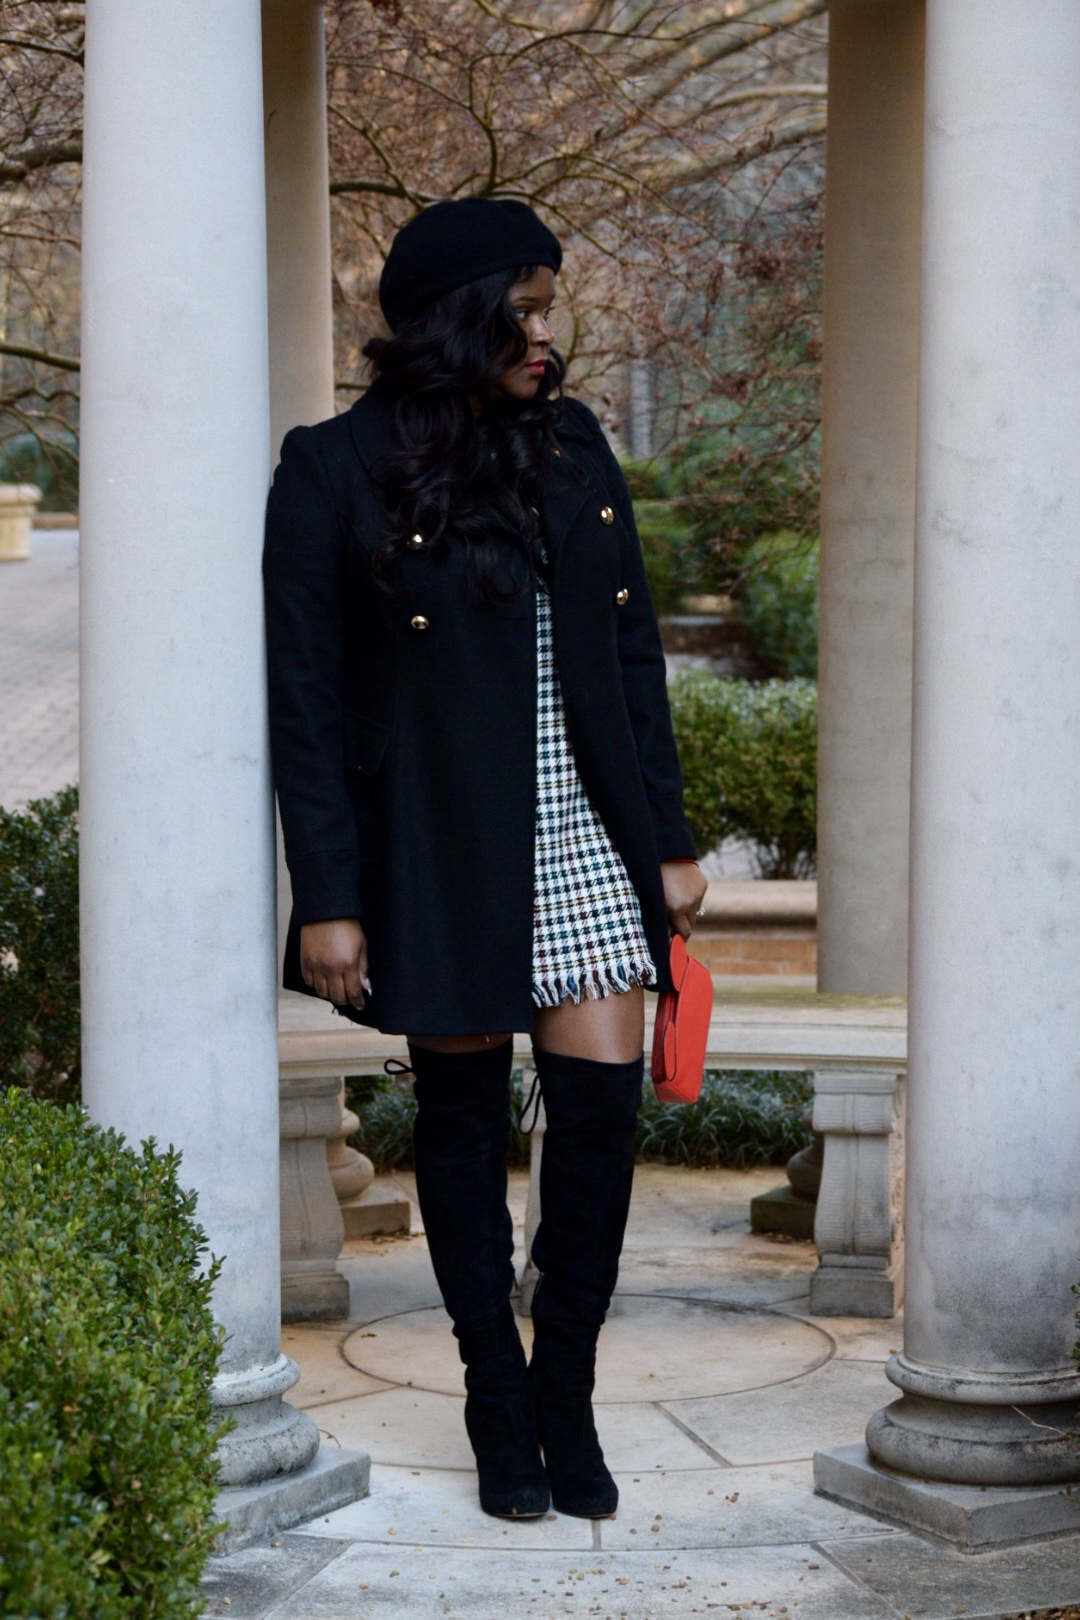 Zara  Dress  (on sale!), Sam Edelman 'Kayla'  Boo t, INC Coat (old), Vintage Beret, Disney x Coach  Wristlet